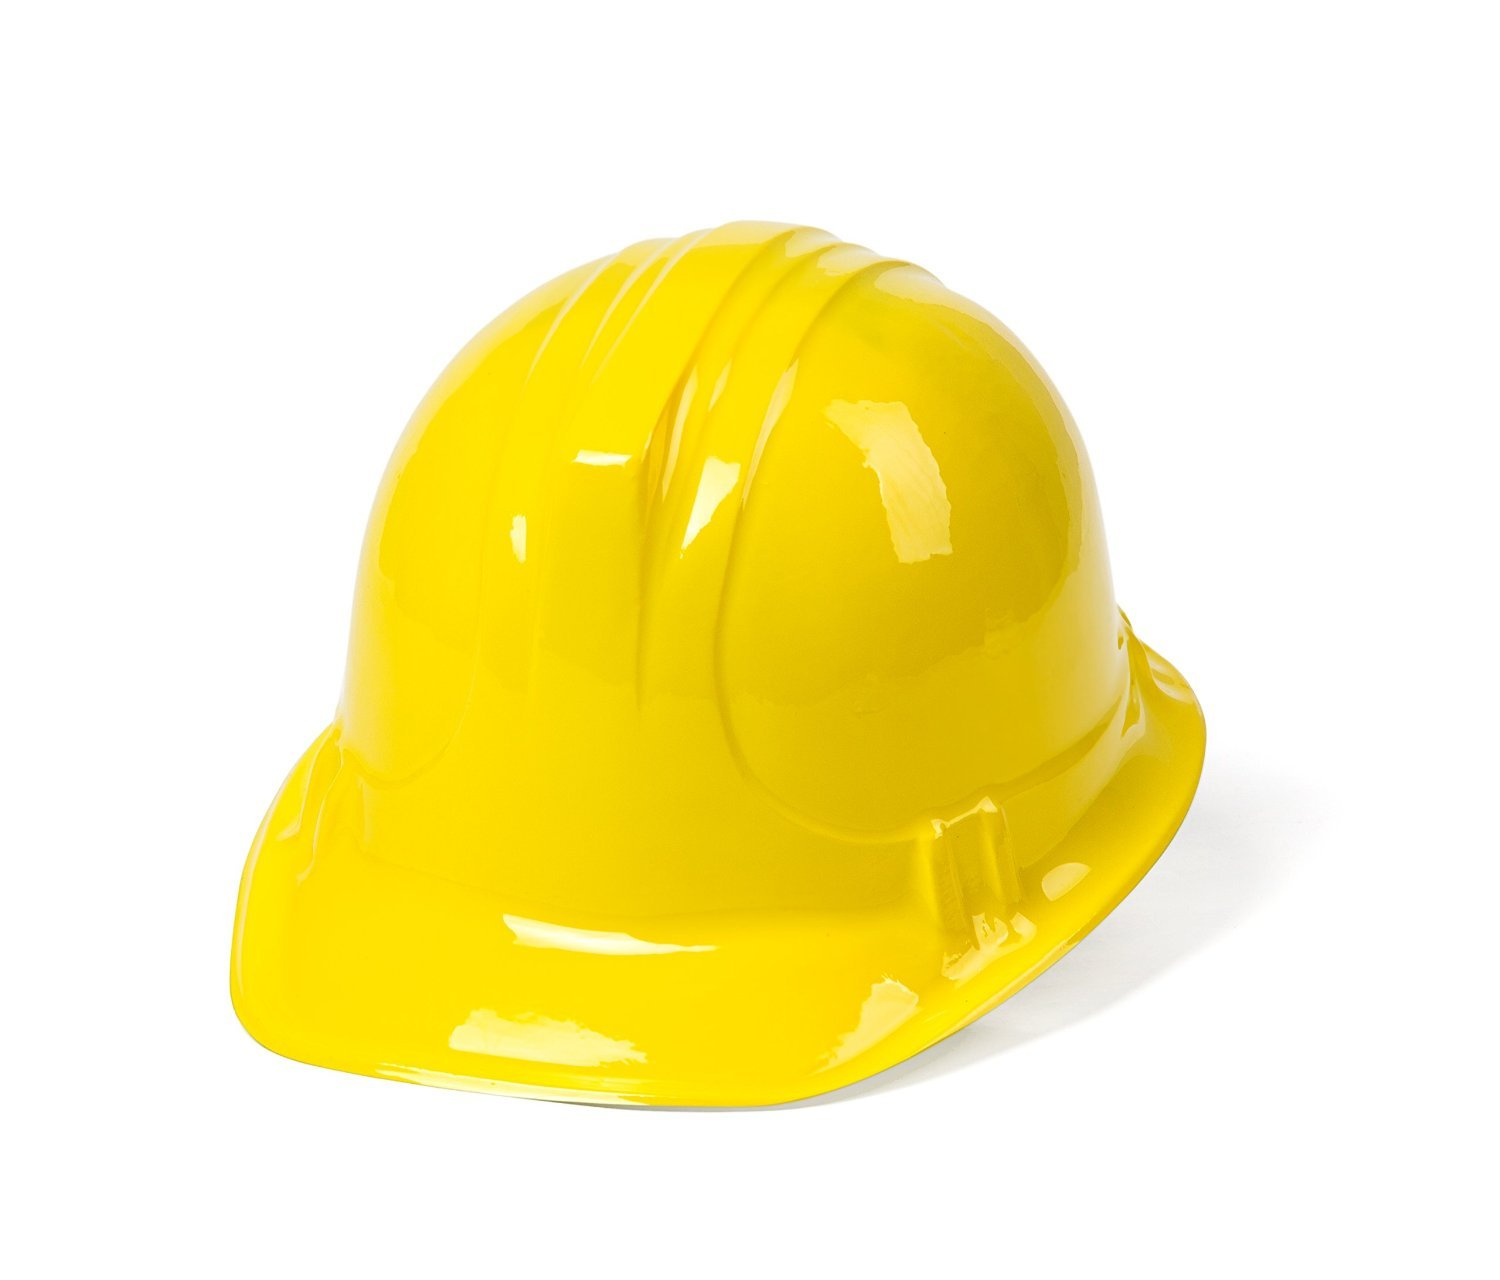 6 Pack Construction Hats | Building Supplies | Dazzling Toys Yellow Construction Hat | Accessory for kids Building Projects | Pack of 6